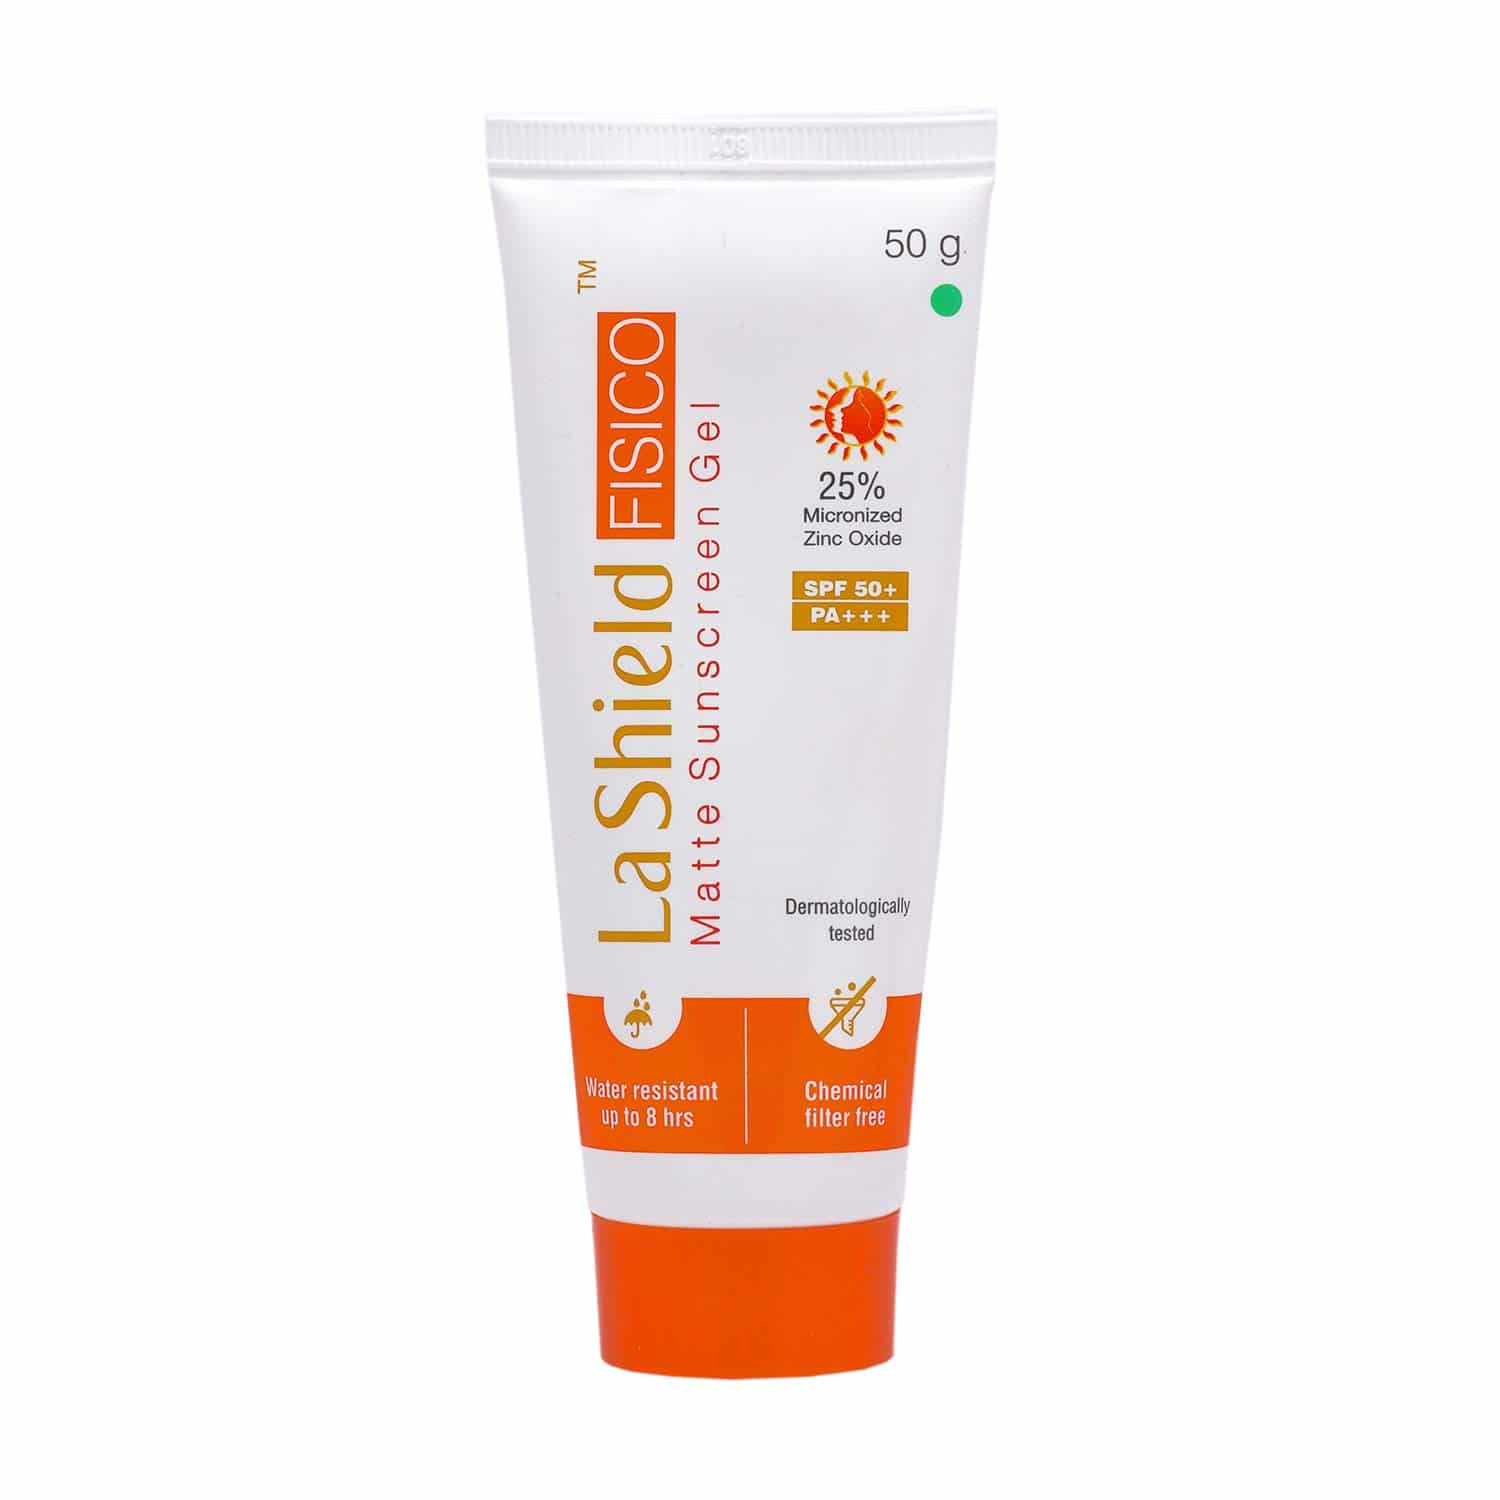 10 Best Sunscreens of 2021 - According to Dermatologists 2